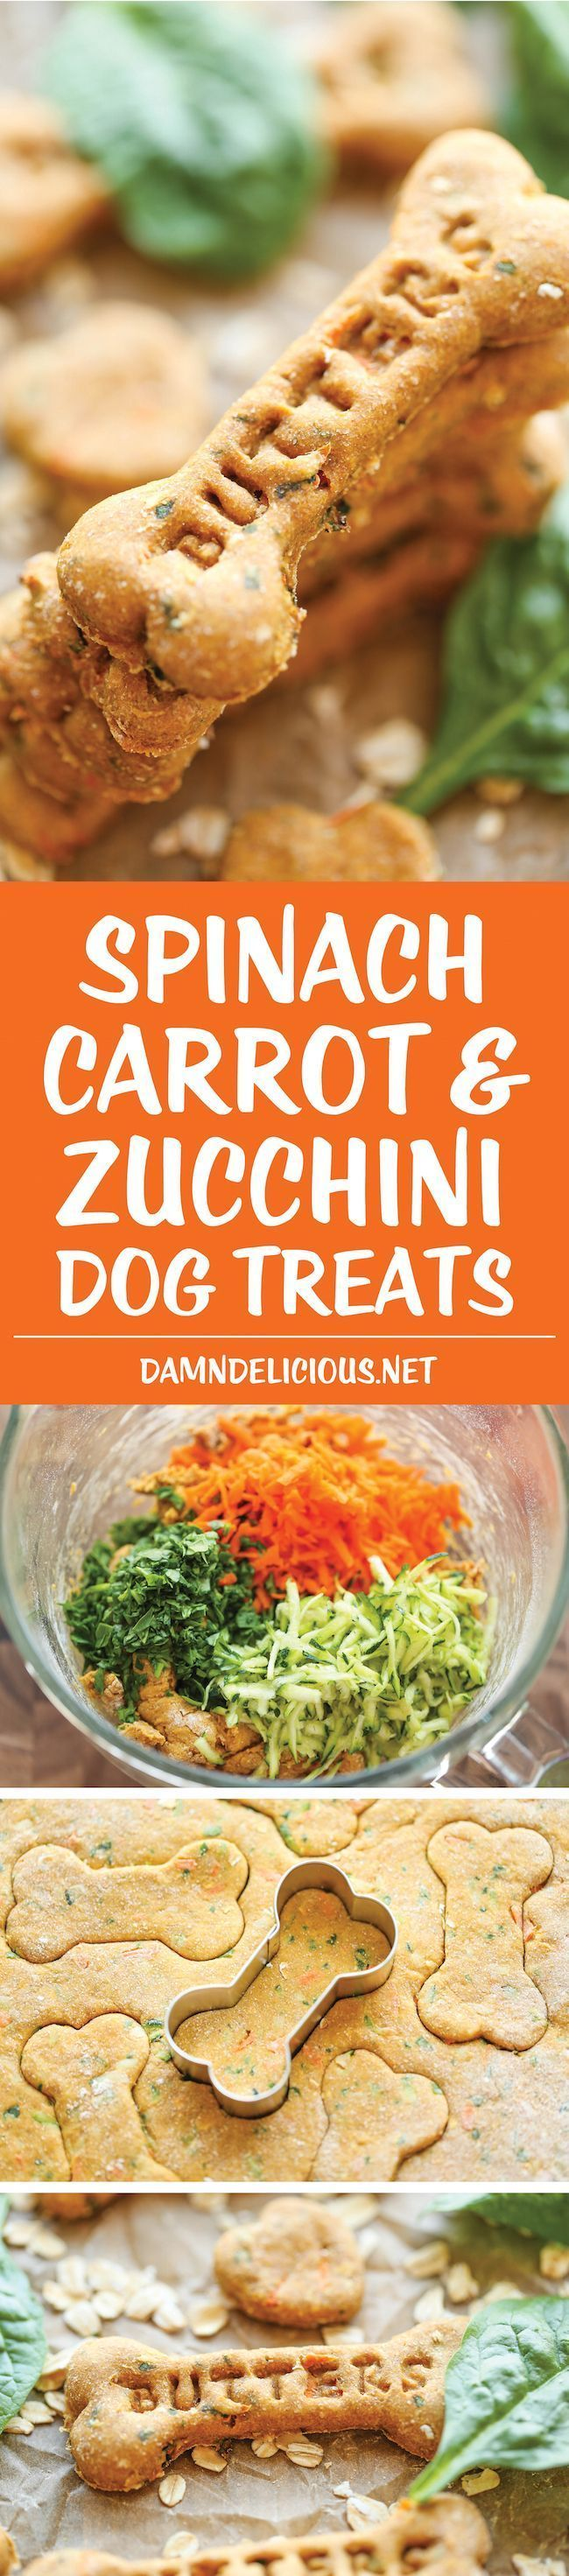 Spinach, Carrot and Zucchini Dog Treats - DIY dog treats that are nutritious, healthy and so easy to make. Plus, your pup will absolutely LOVE these! #DogHealthTips